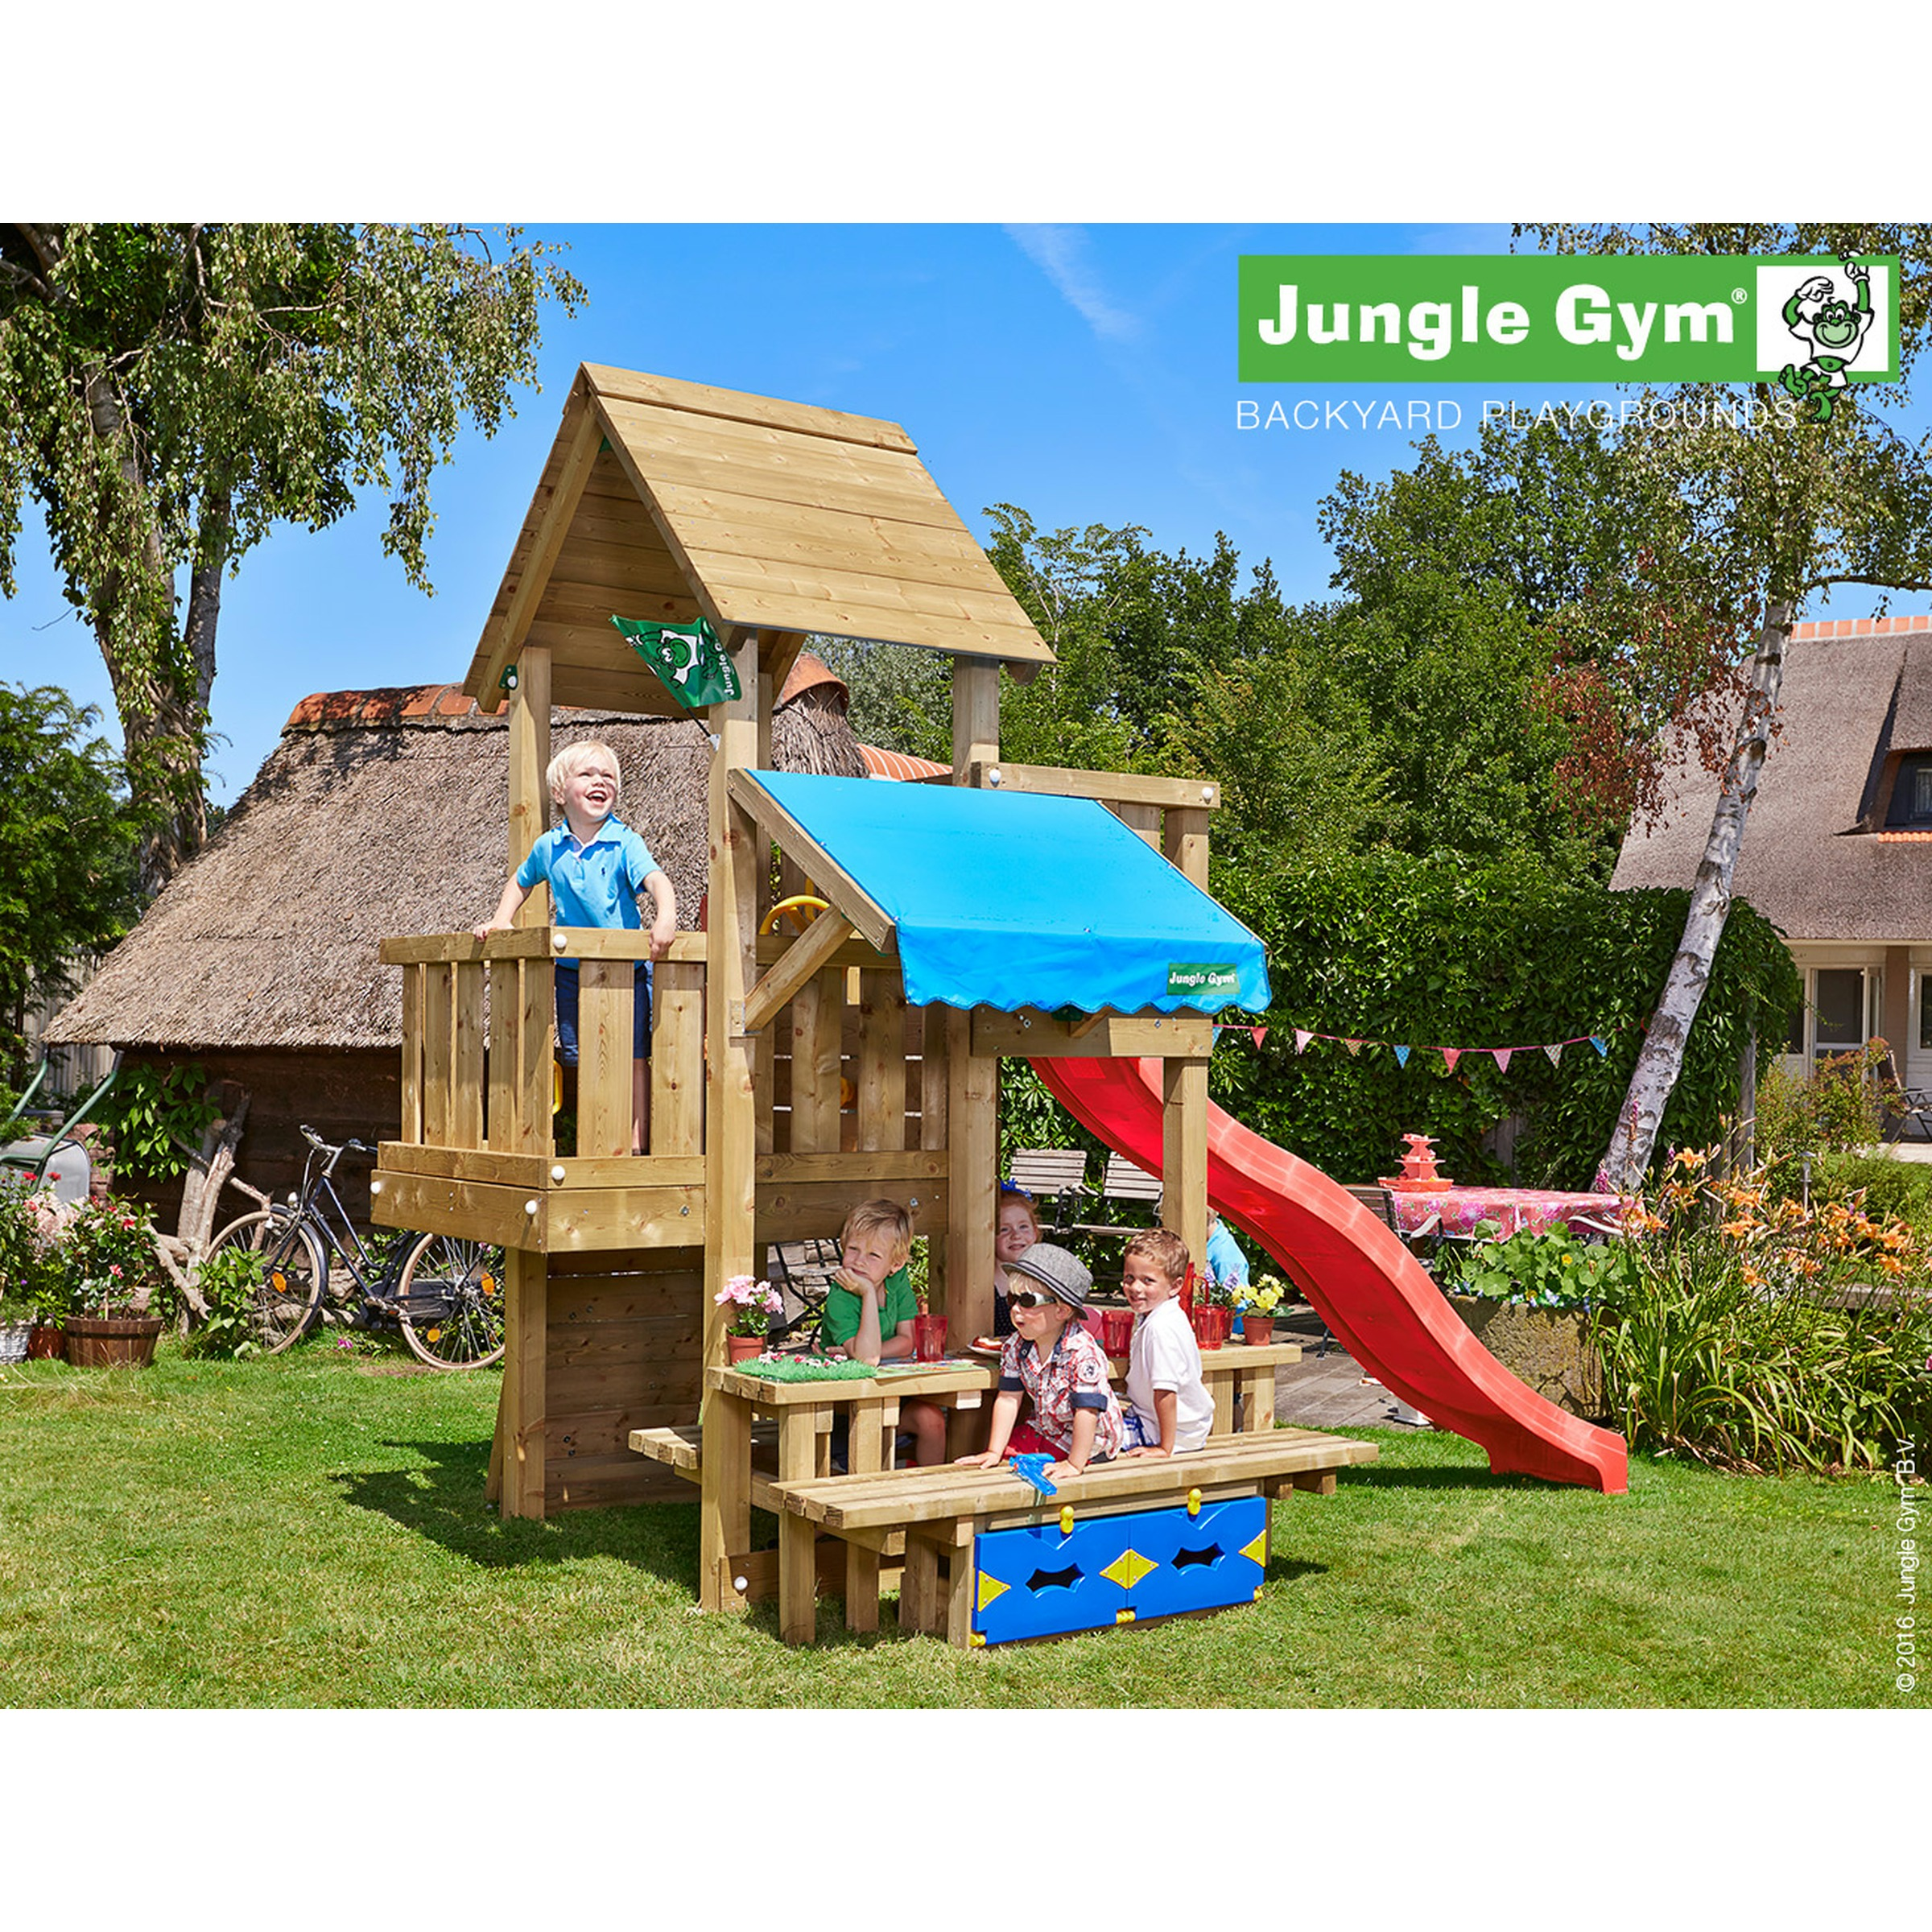 Jungle Gym Cubby Speeltoestel met Glijbaan en Picknicktafel